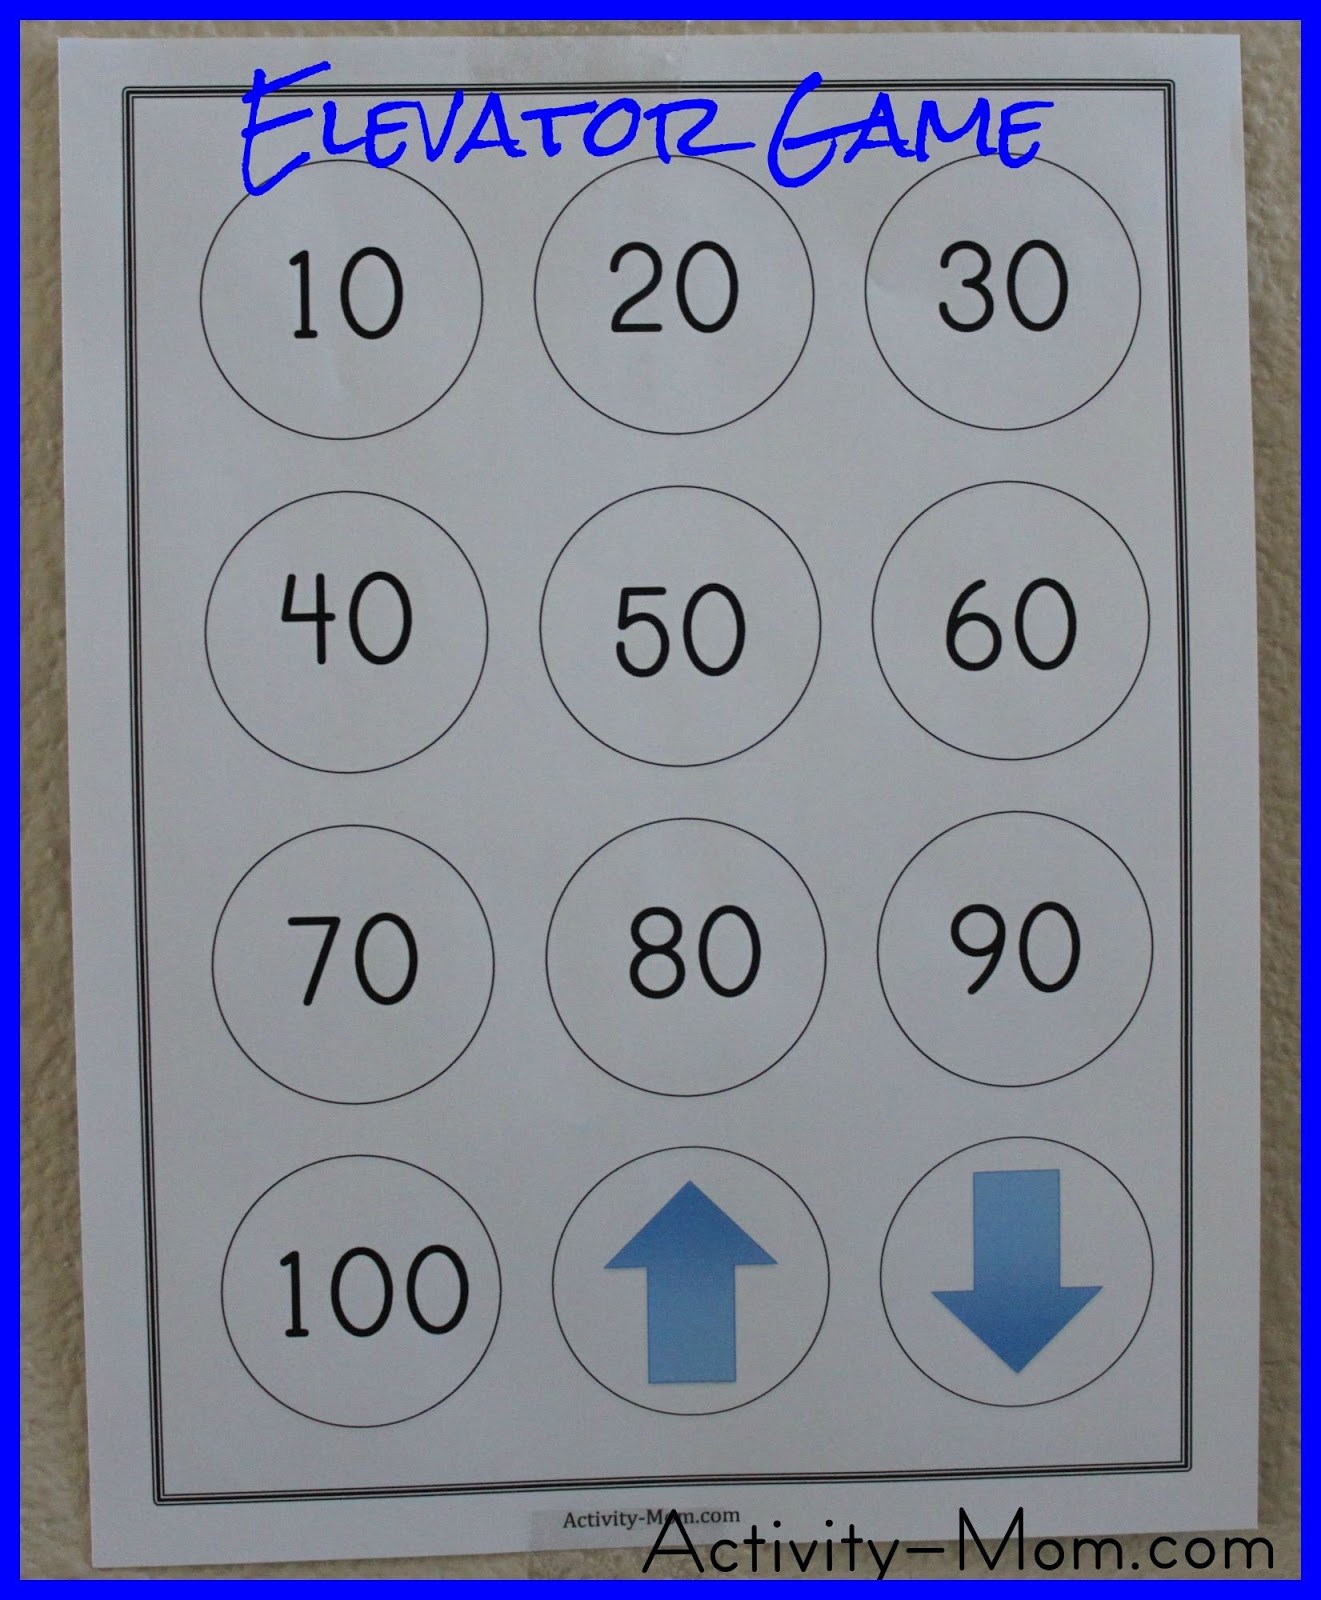 Learn to count by tens with this fun and simple Elevator Game!